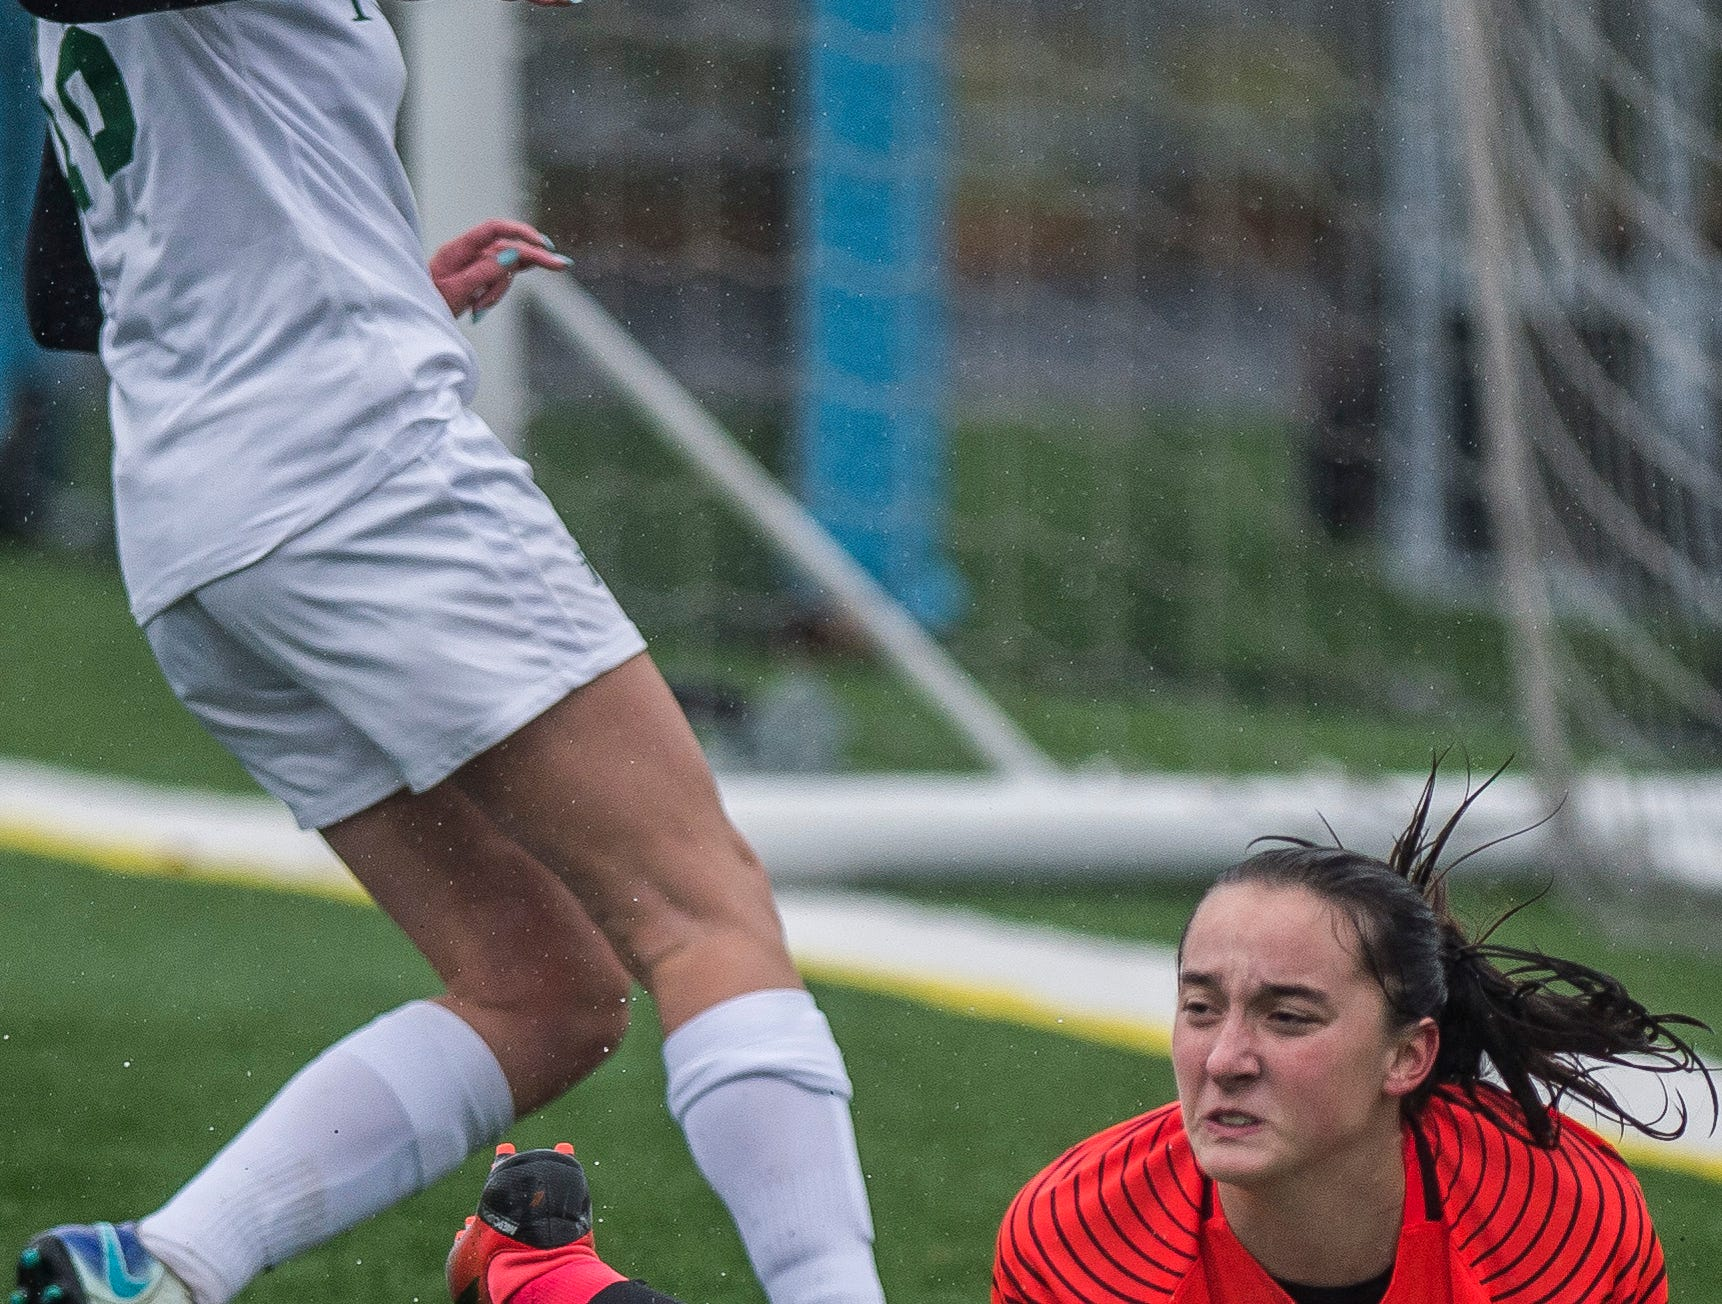 Milton goalie Madison North pulls in the loose ball during the Div. 2 Vermont State girl's high school soccer championship on Saturday, Nov. 3, 2018, at South Burlington High School. Milton won the championship in sudden-death overtime, 2-1.